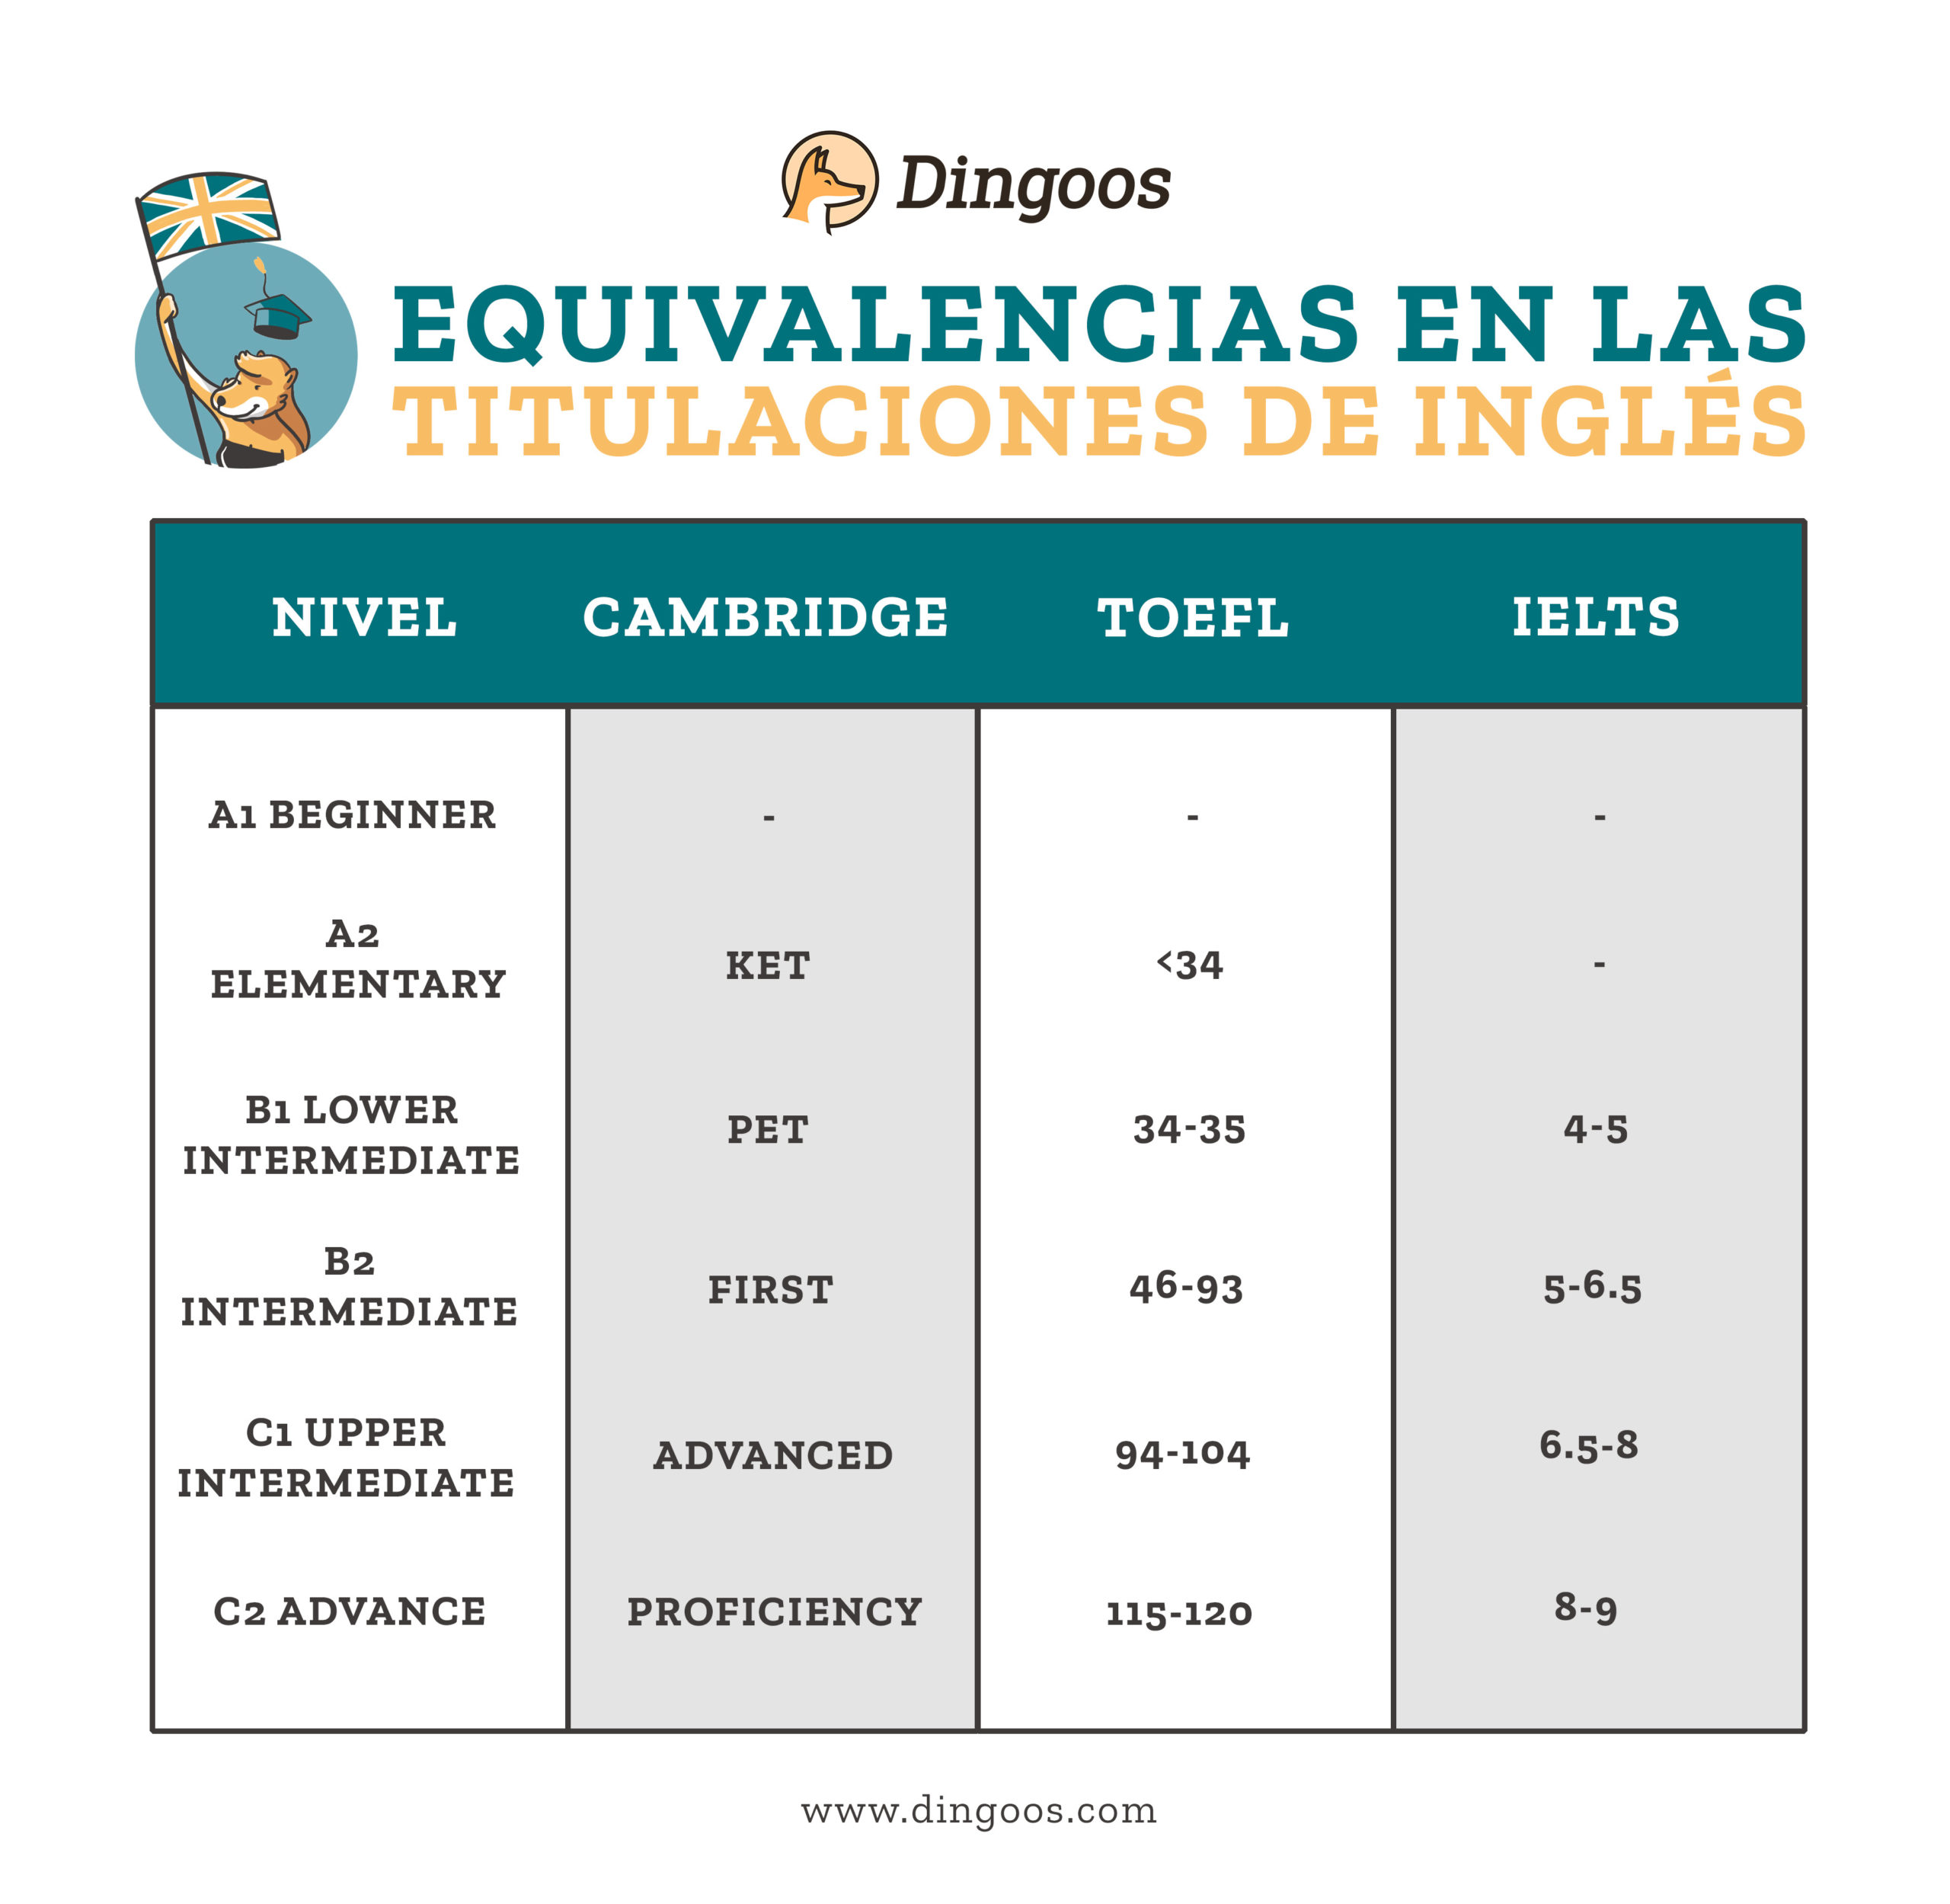 tabla equivalencias titulos inglees